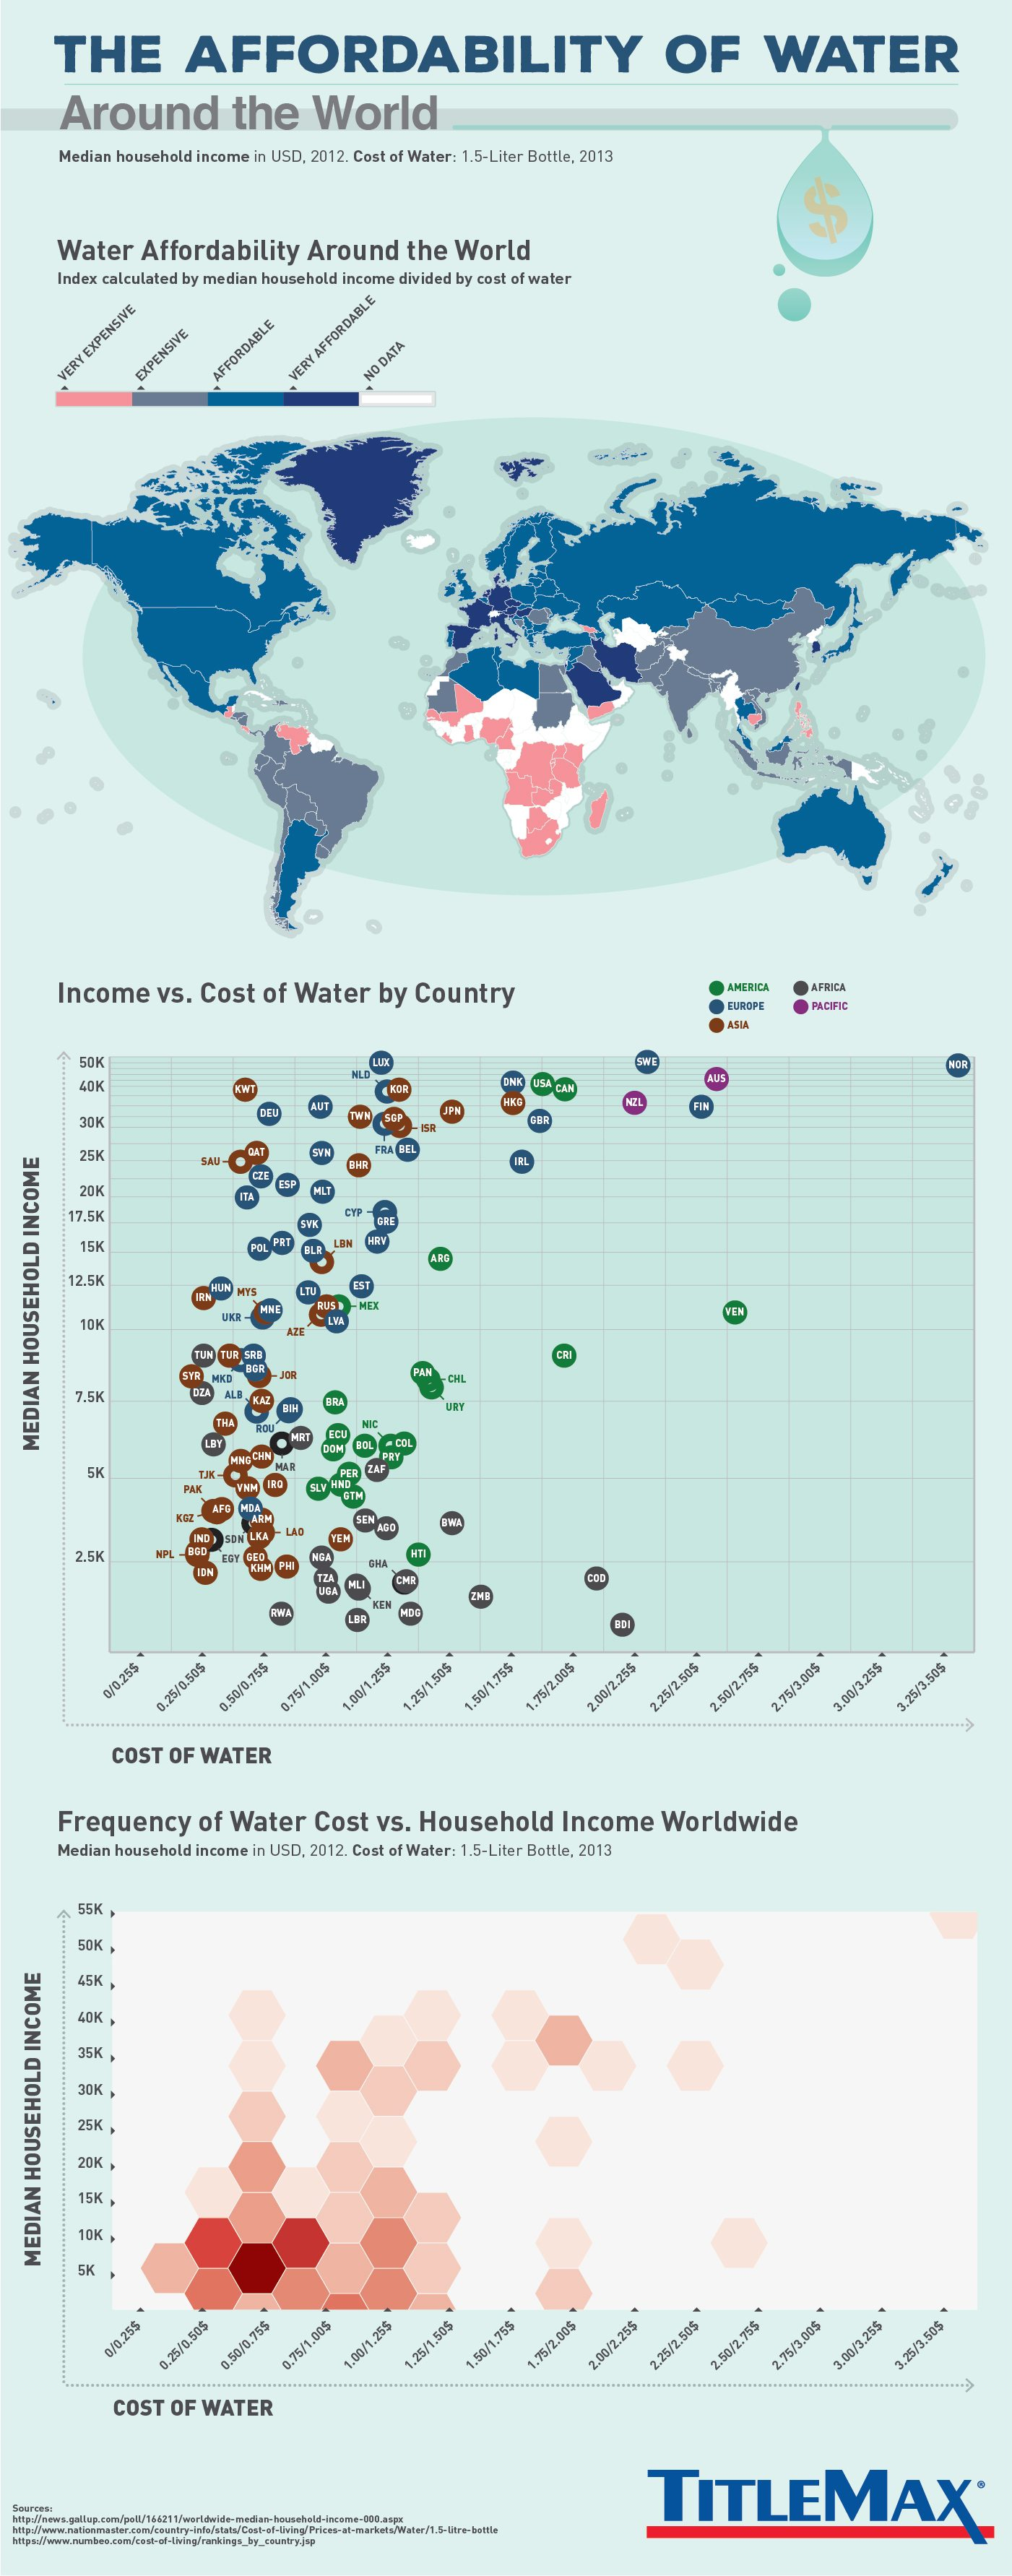 Affordability of Water Around the World